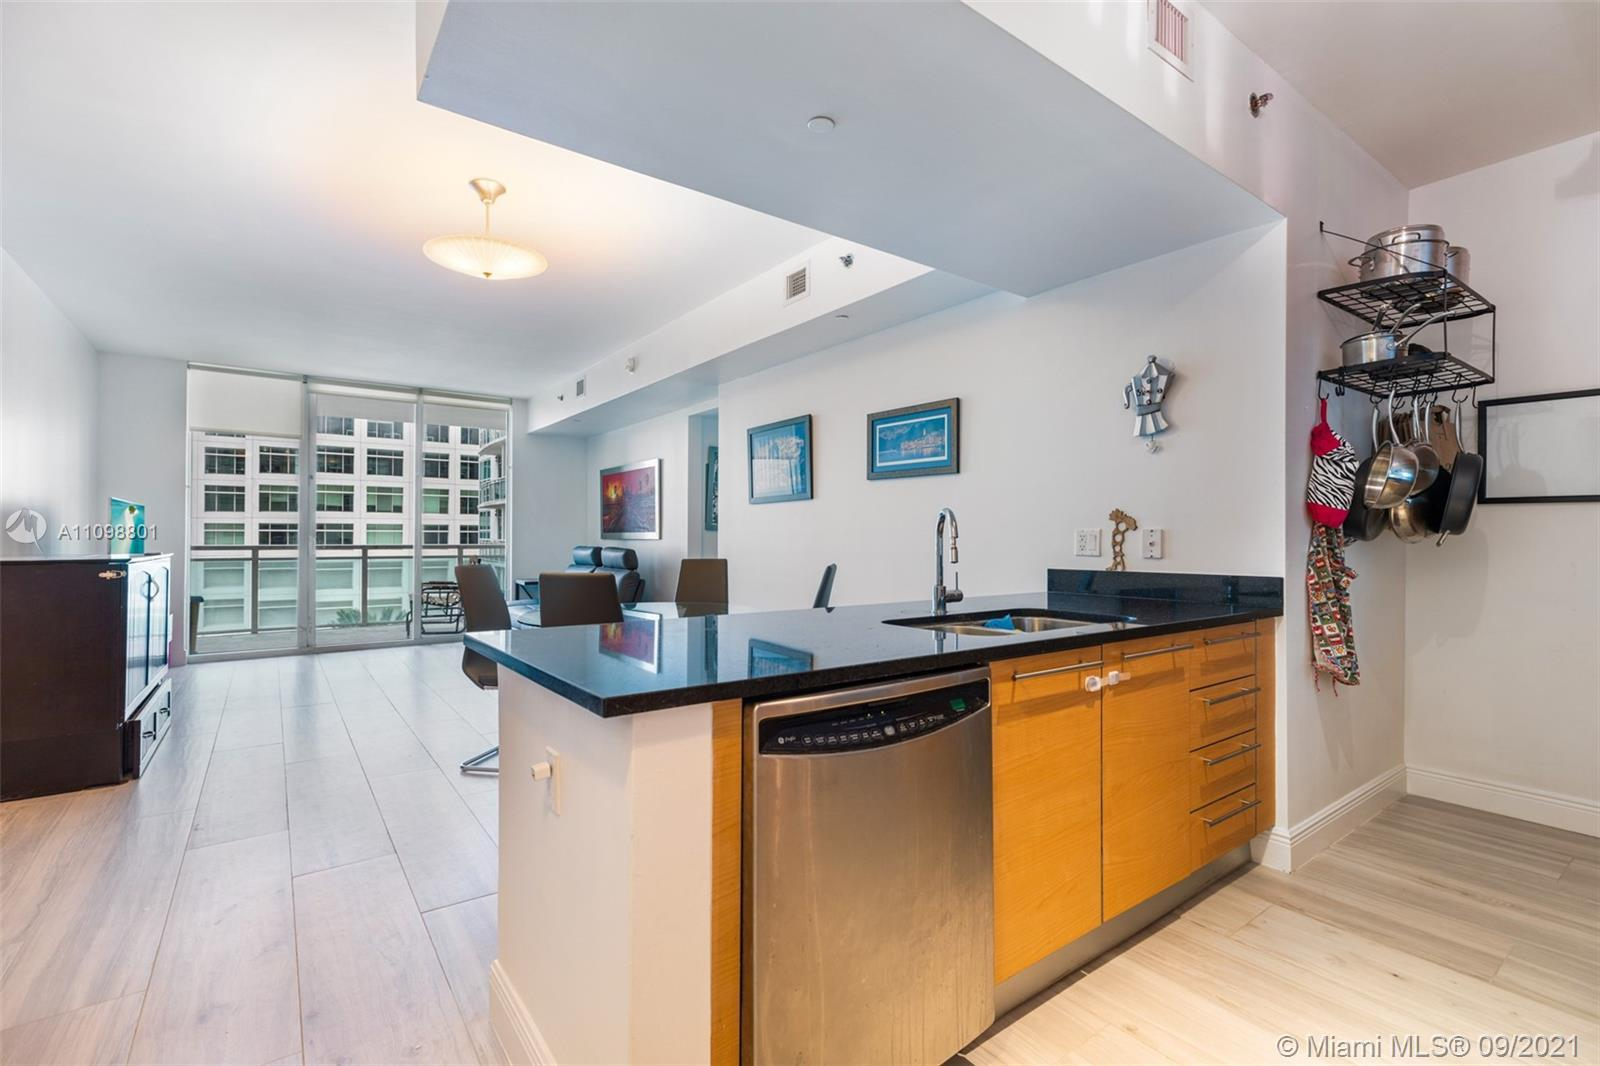 Welcome to the best deal in all of Brickell & Plaza Brickell for a large 1bed/1bath updated corner u